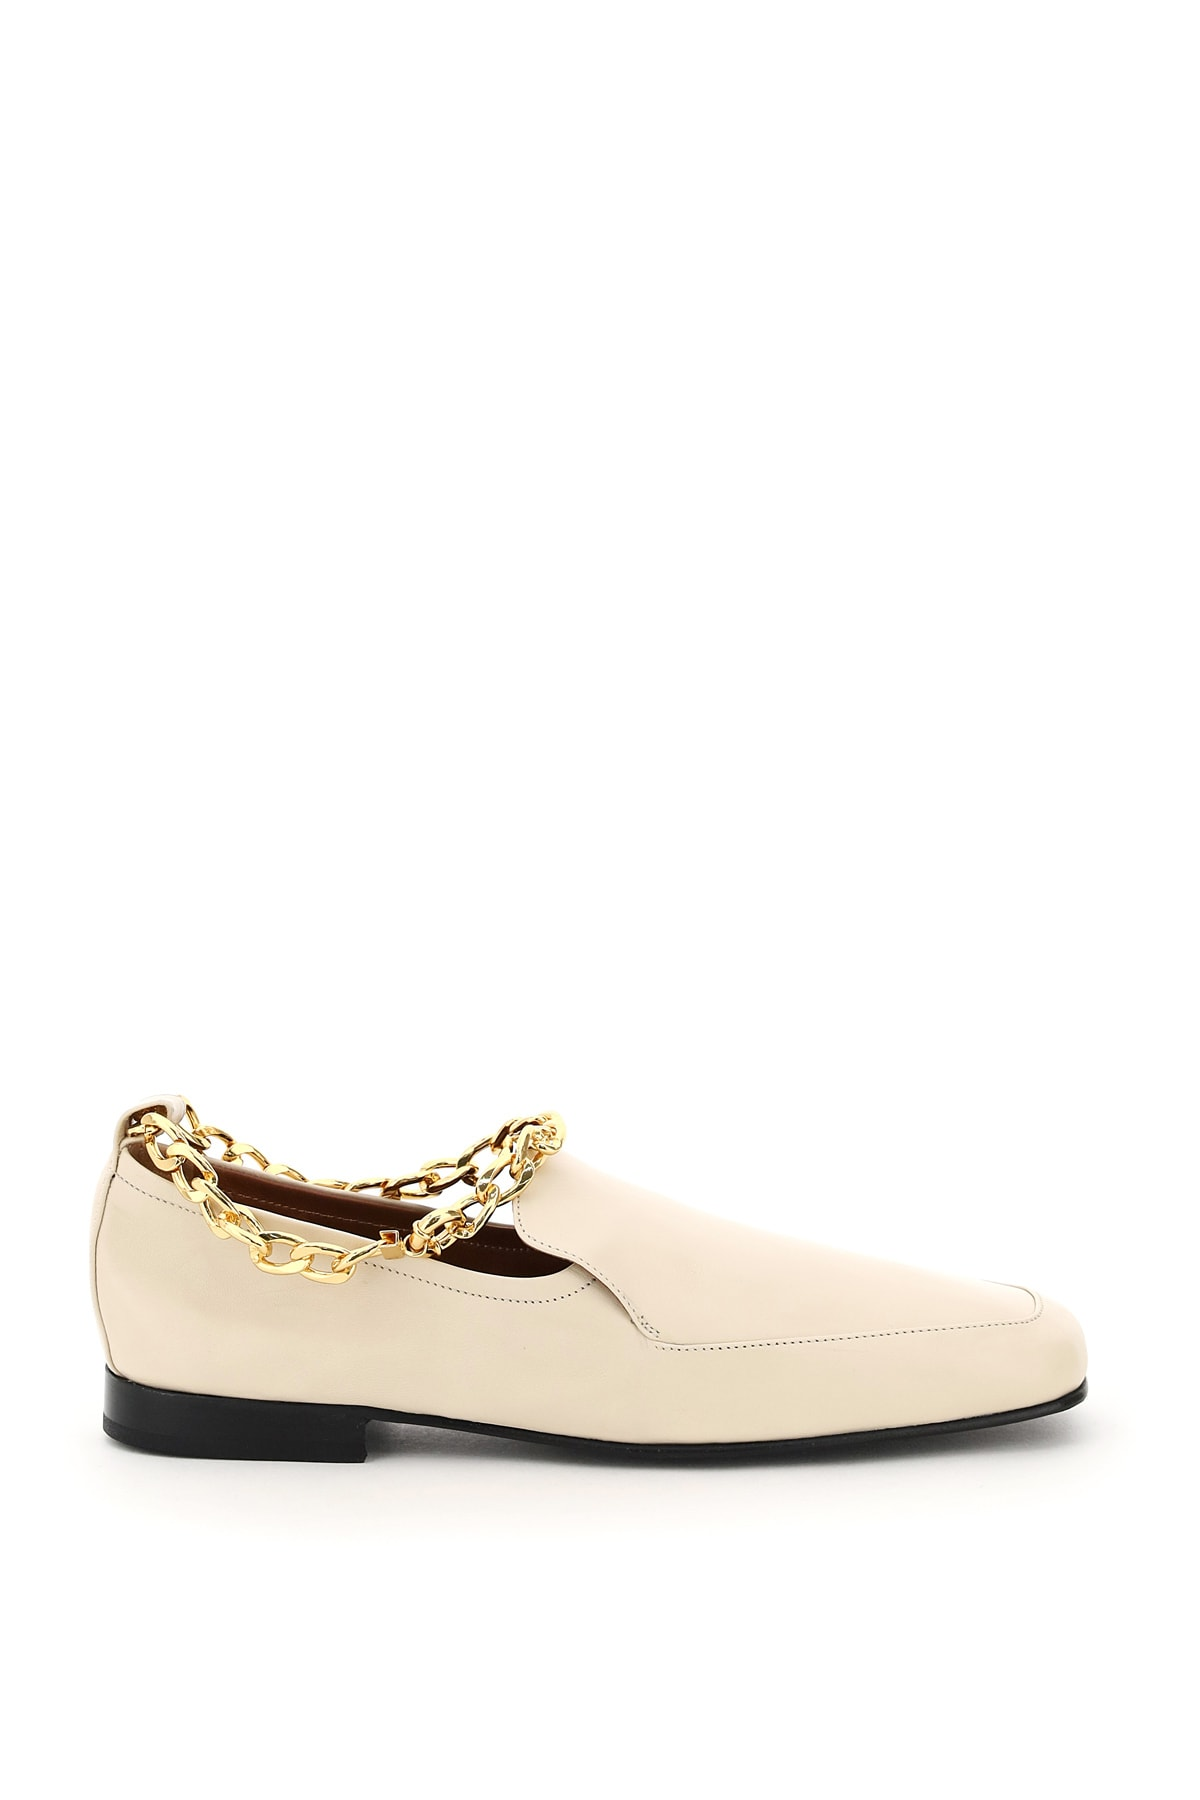 By Far Leathers NICK LOAFERS WITH CHAIN